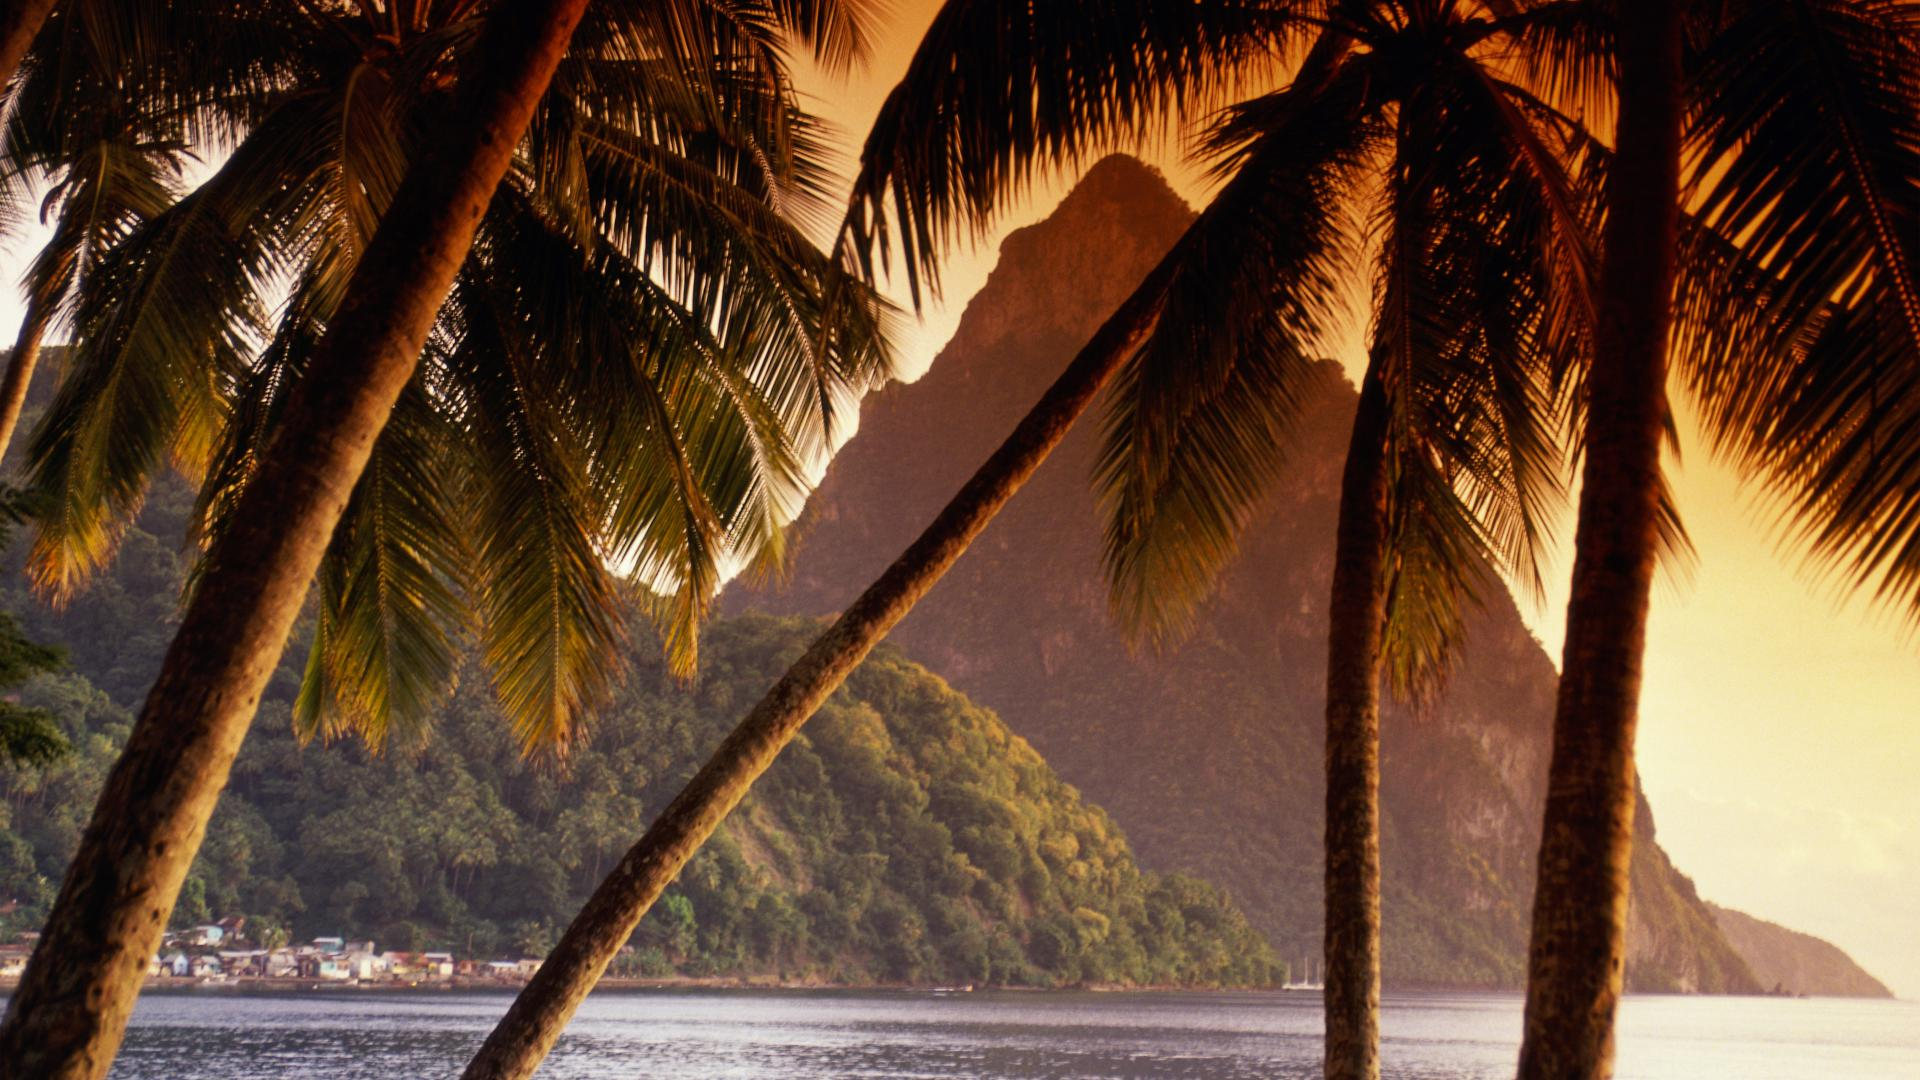 backgrounds wallpaper background soufriere piton beach lucia 1920x1080